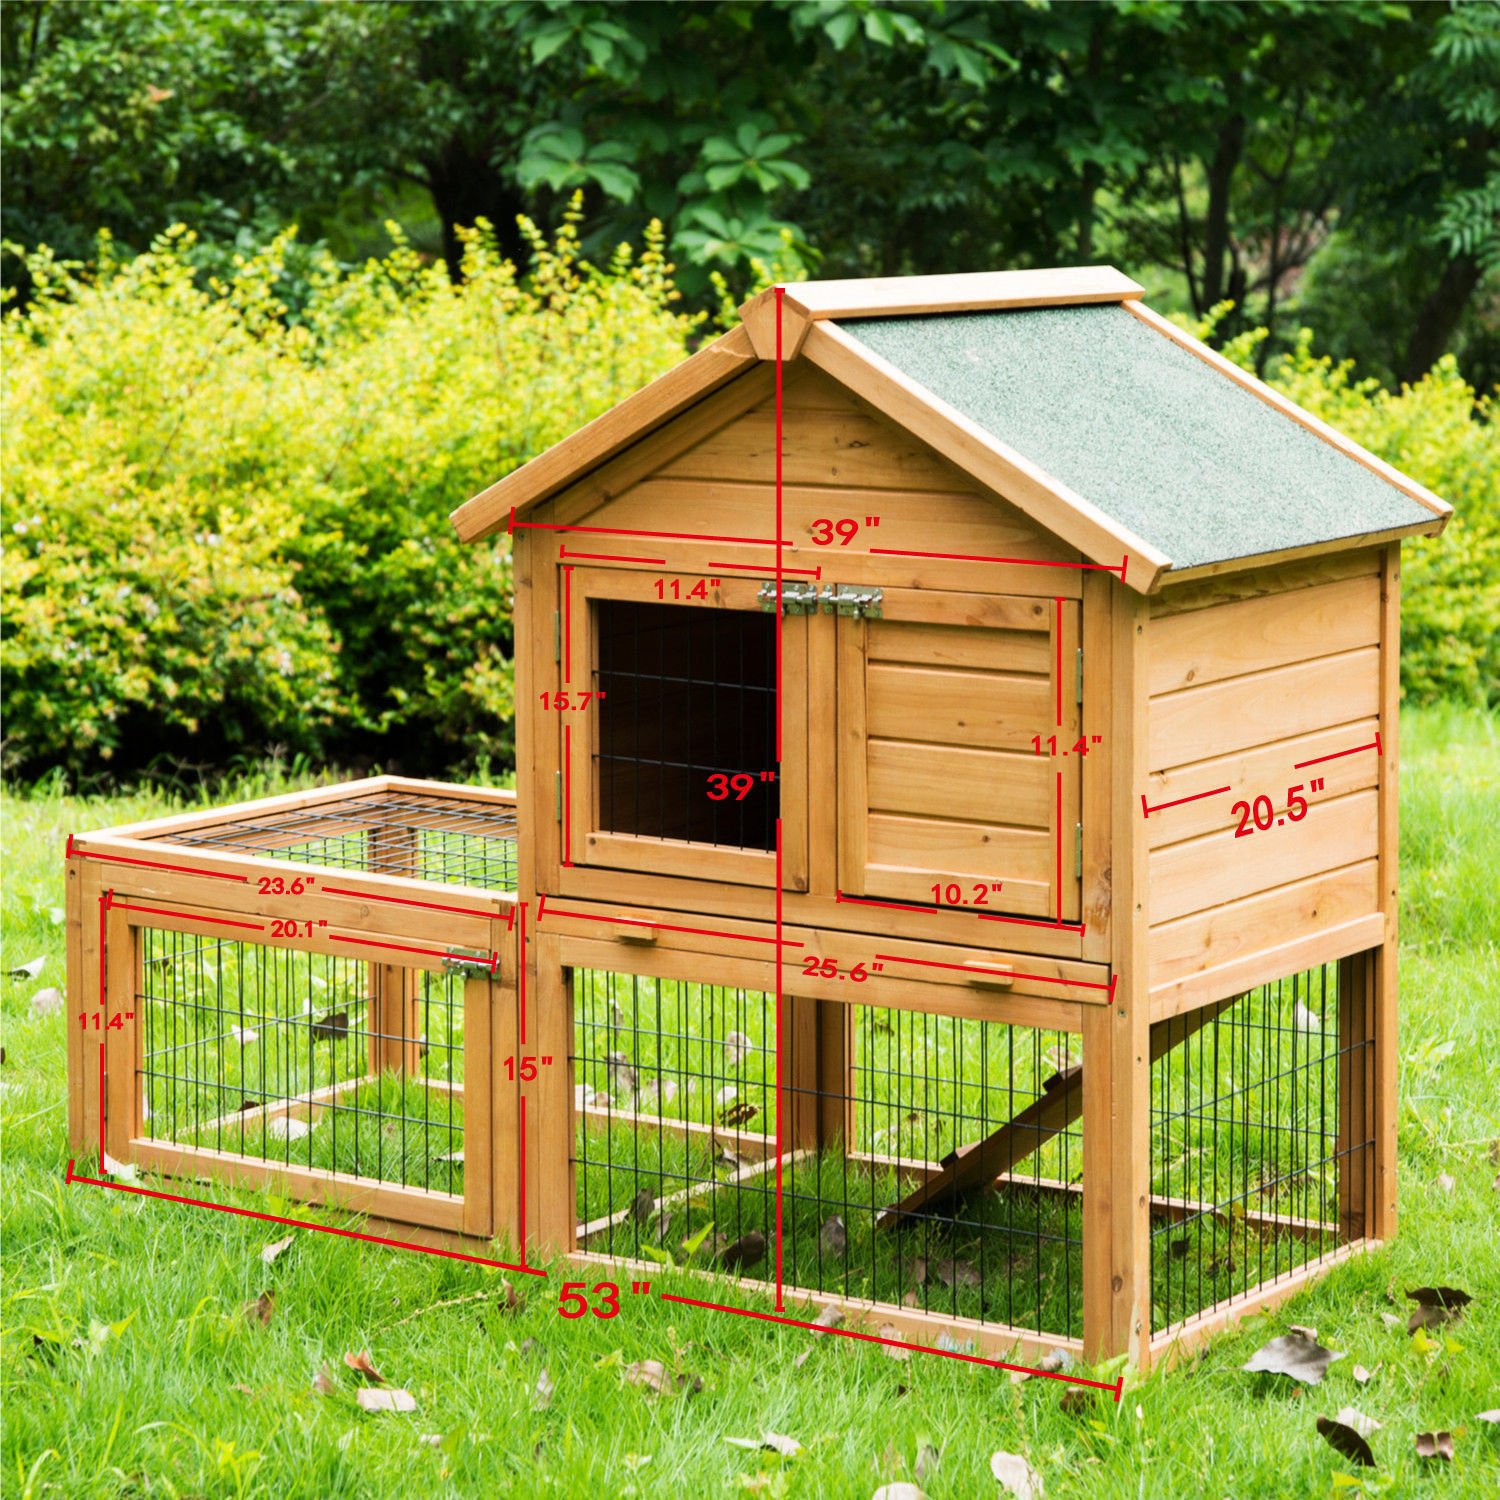 Eight24hours 53'' Wooden Chicken Coop Rabbit Hutch Small Pet House Hen Cages + FREE E-Book by Eight24hours (Image #2)